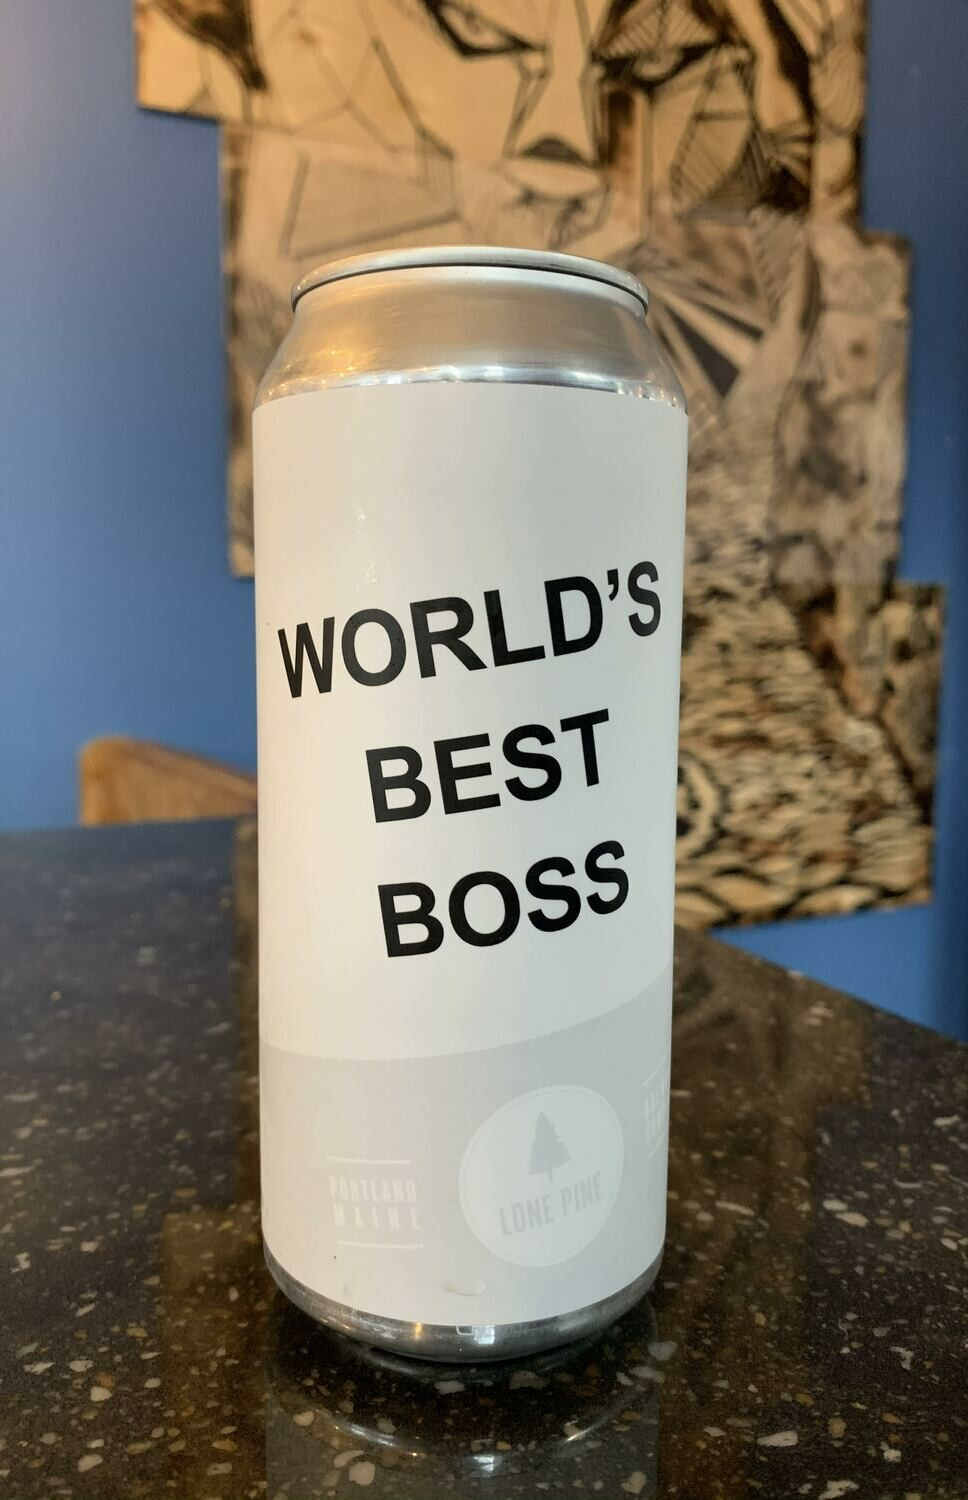 World's Best Boss 16ozc (Lone Pine)